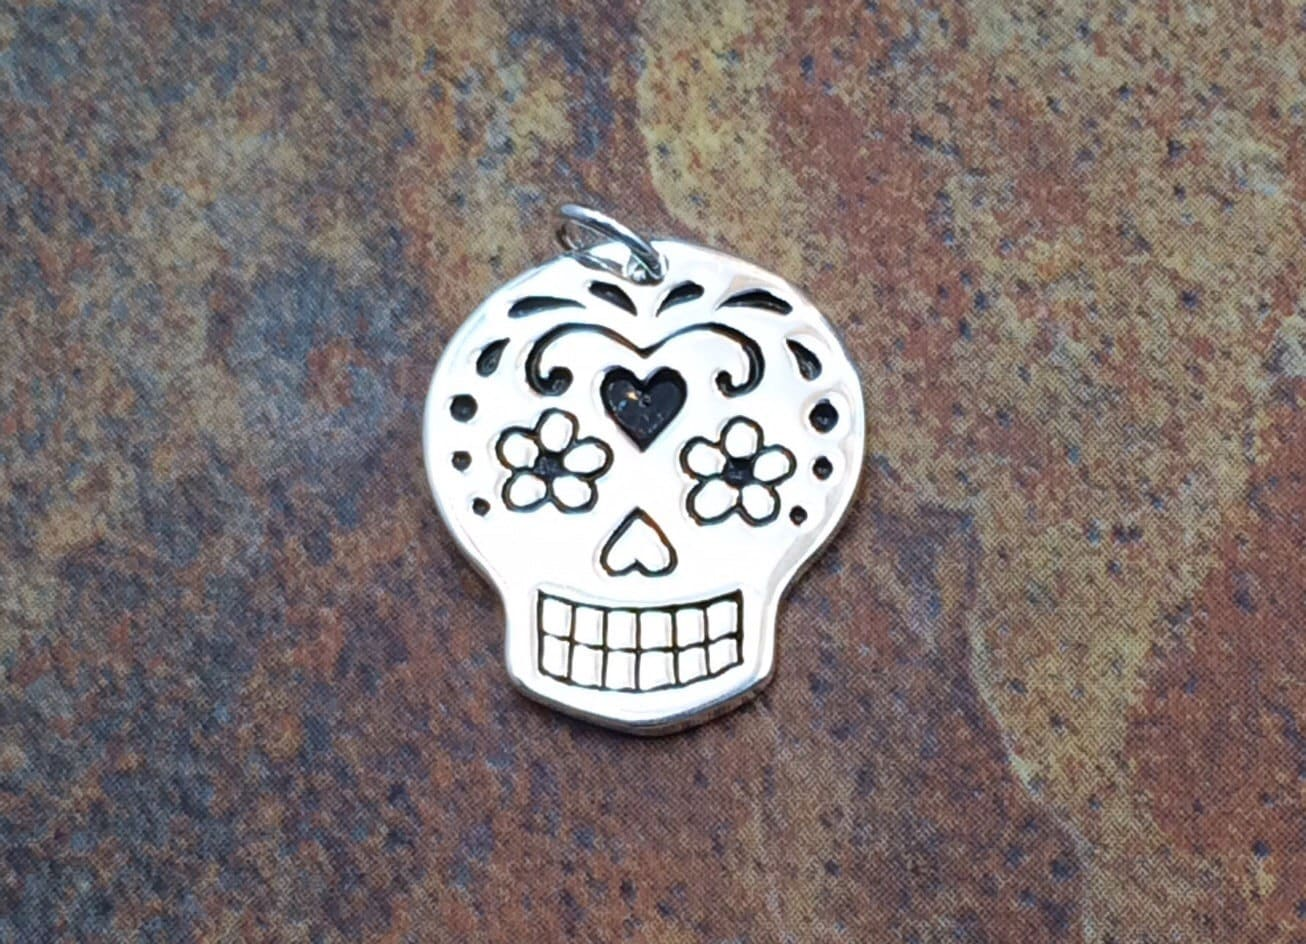 jewelry item pendants stainless for large in on steel pendant mens sugar man from necklace accessories skull fashion